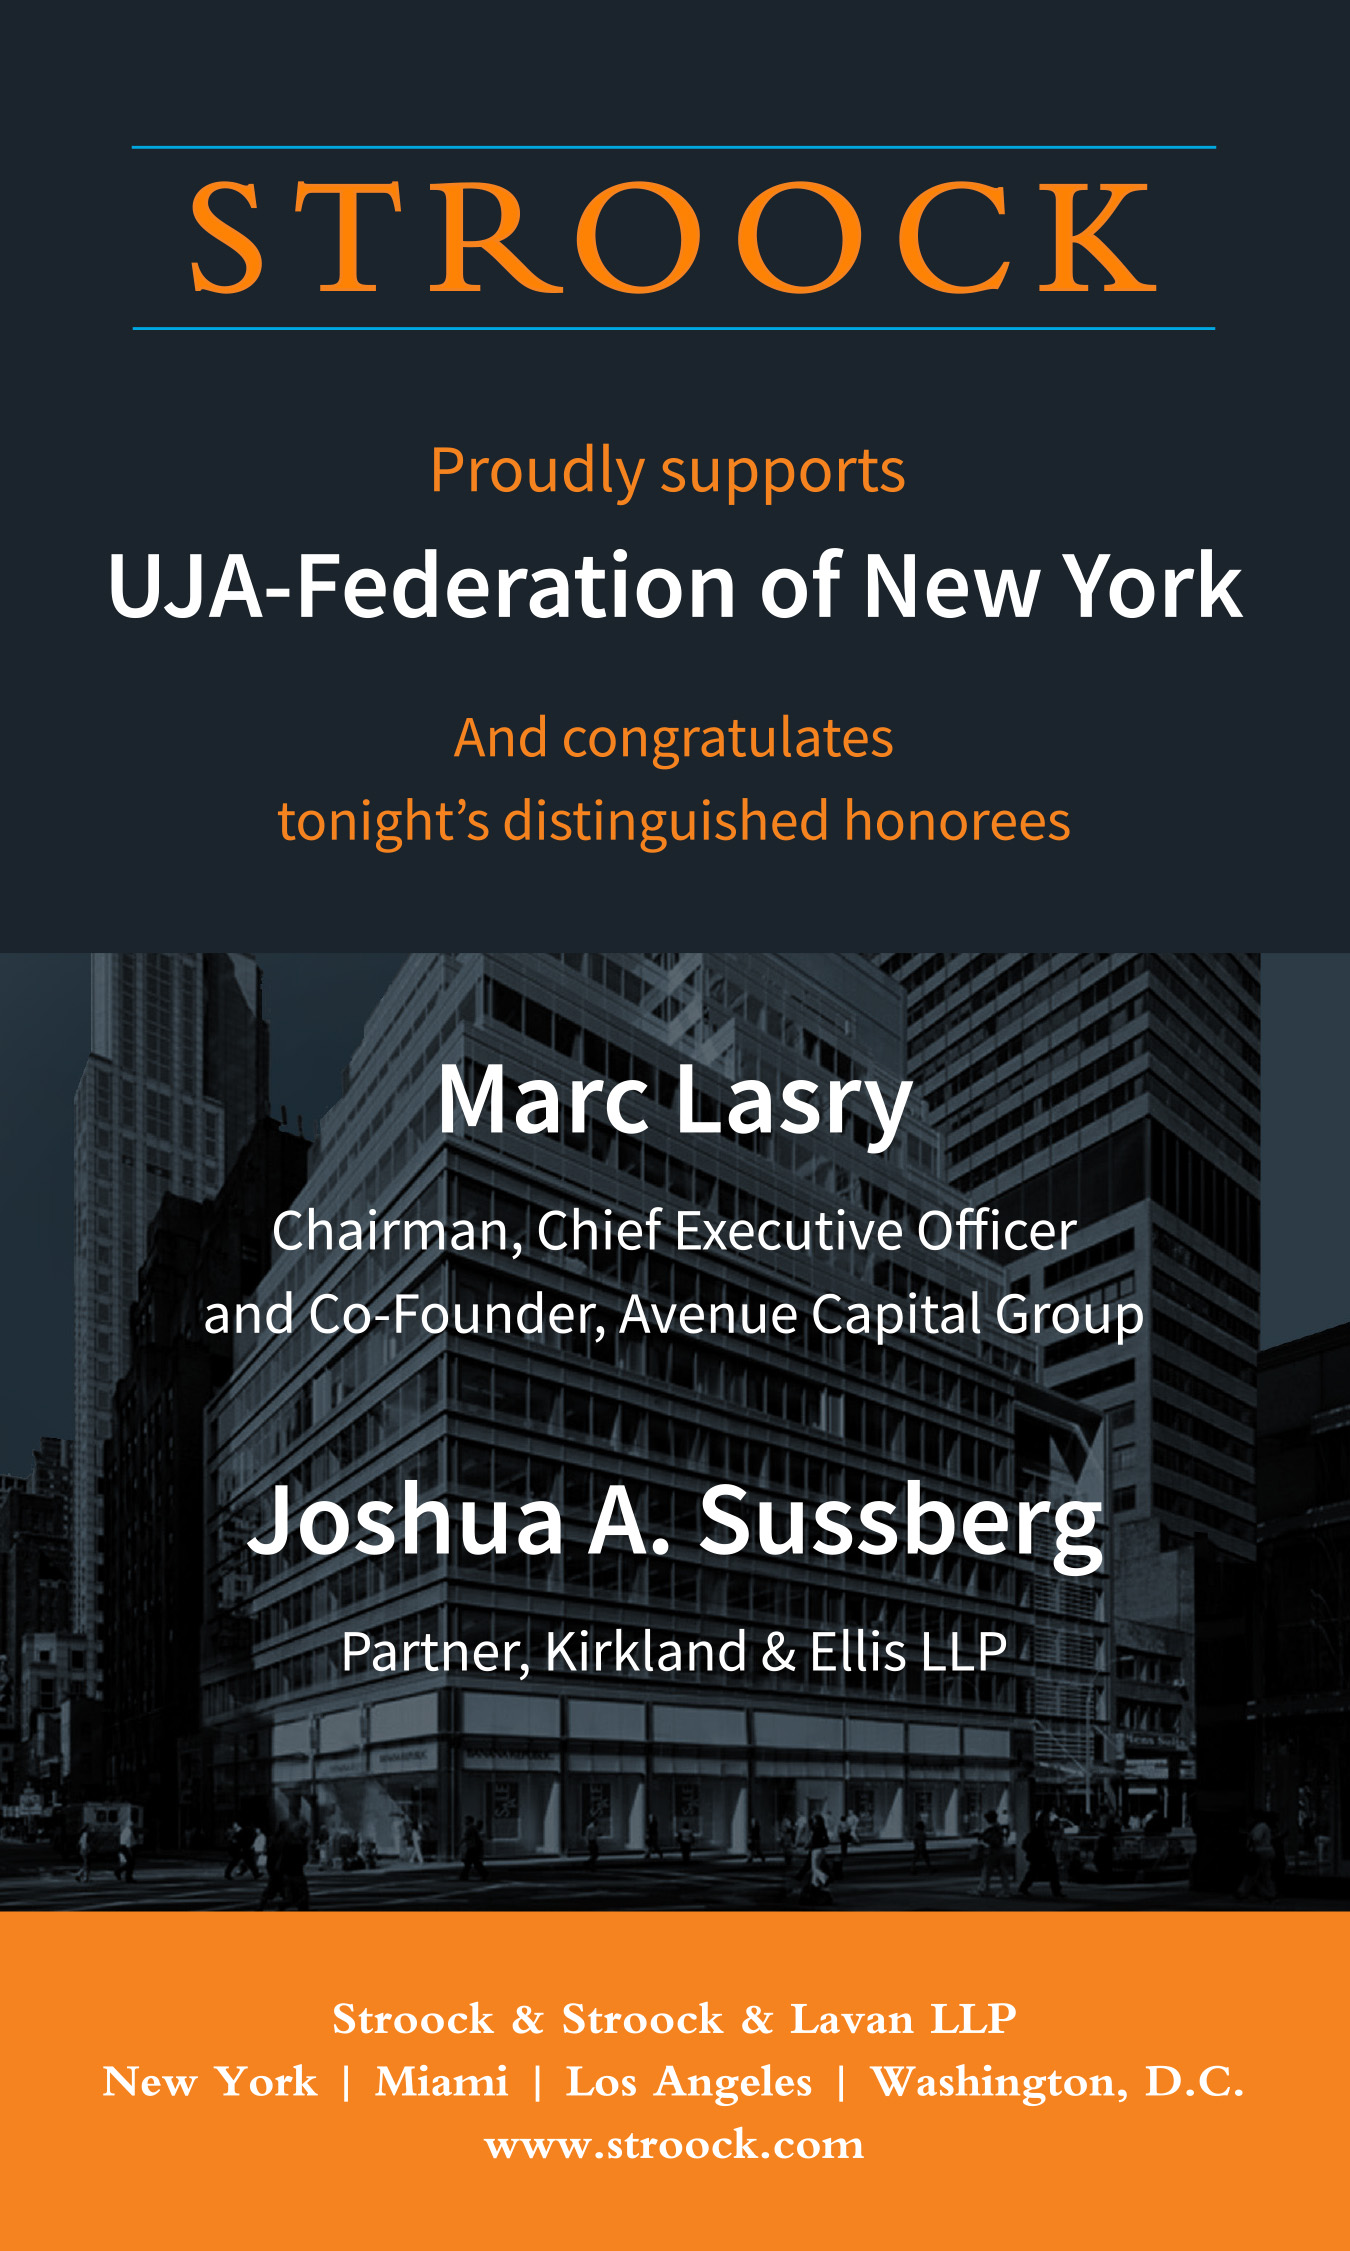 UJA-Federation Dinner - Building Image -